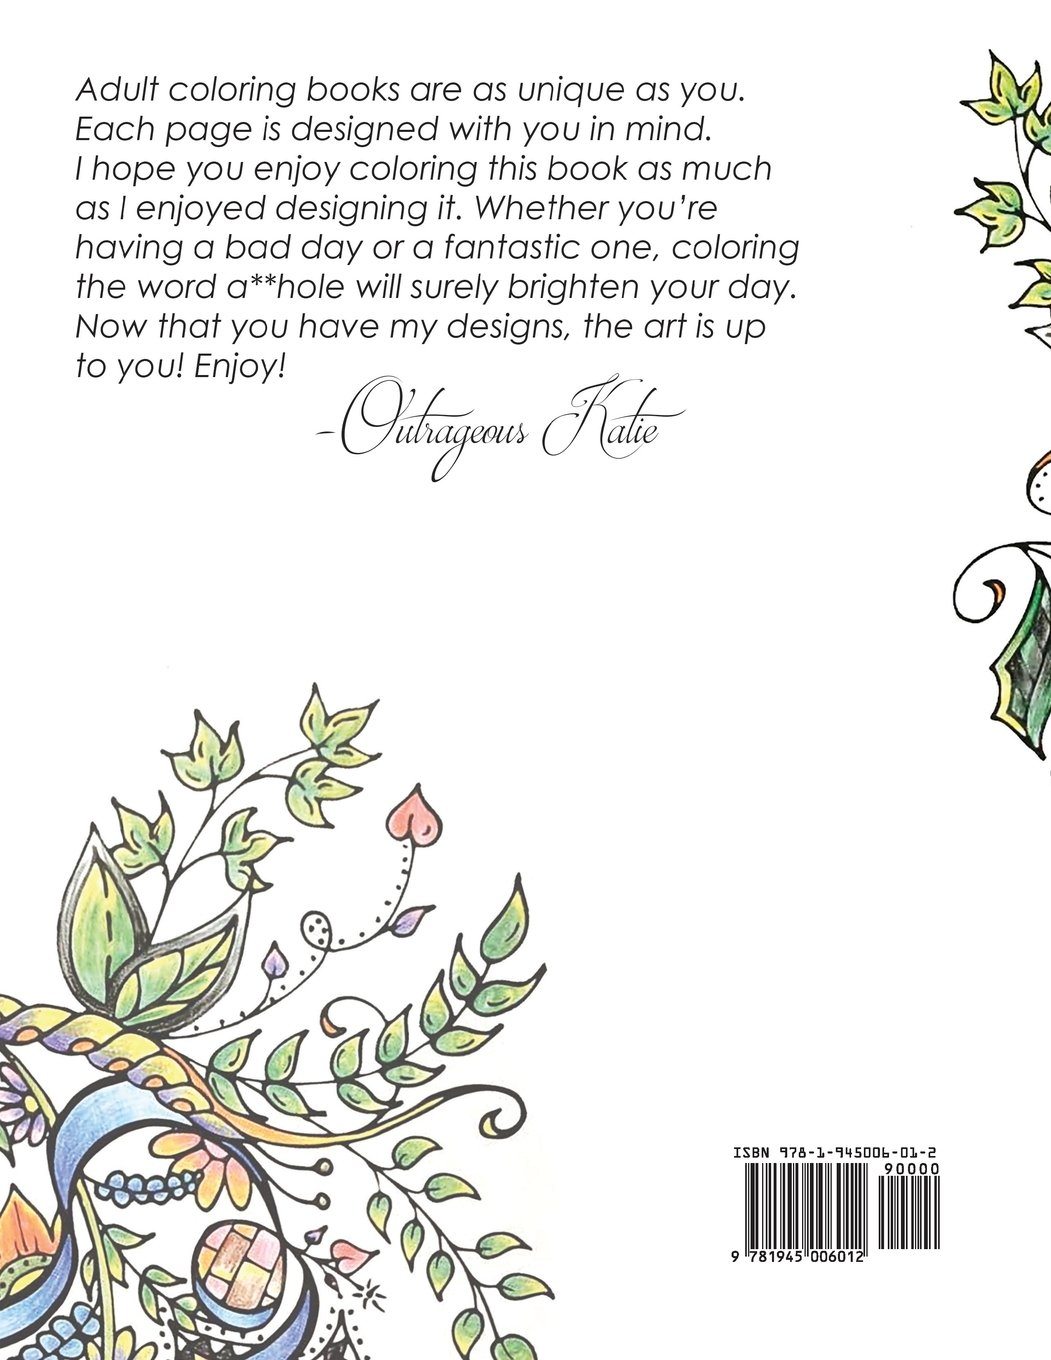 Swear word coloring book sarah bigwood - Curse Word Coloring Book App Swear Word Coloring Book Hilarious And Disturbing Adult Coloring Books